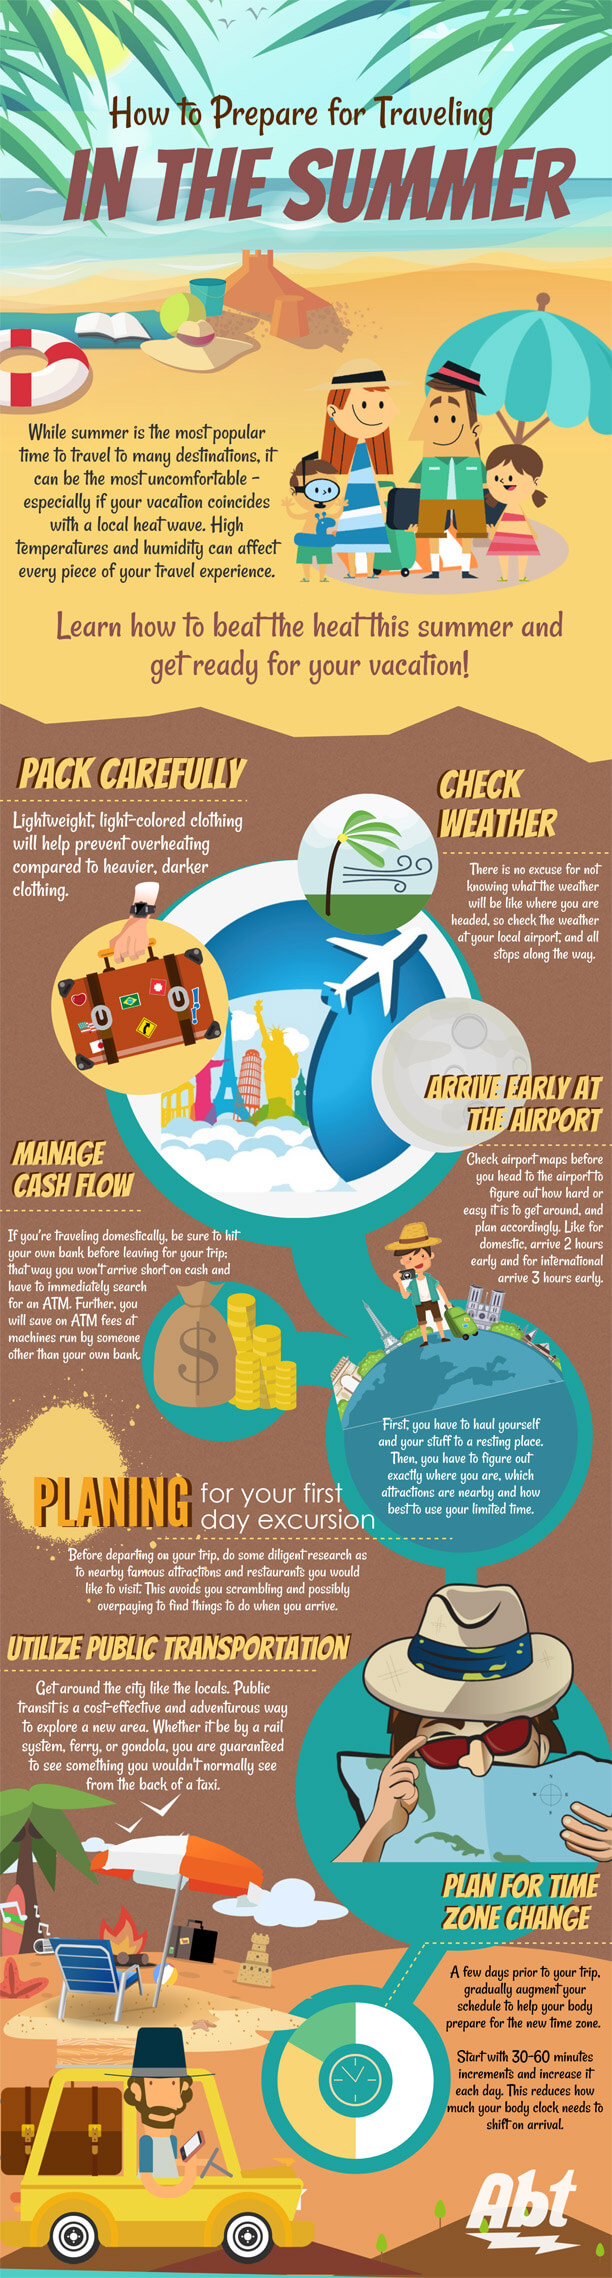 Abt's How To Prepare For Traveling In The Summer Infographic